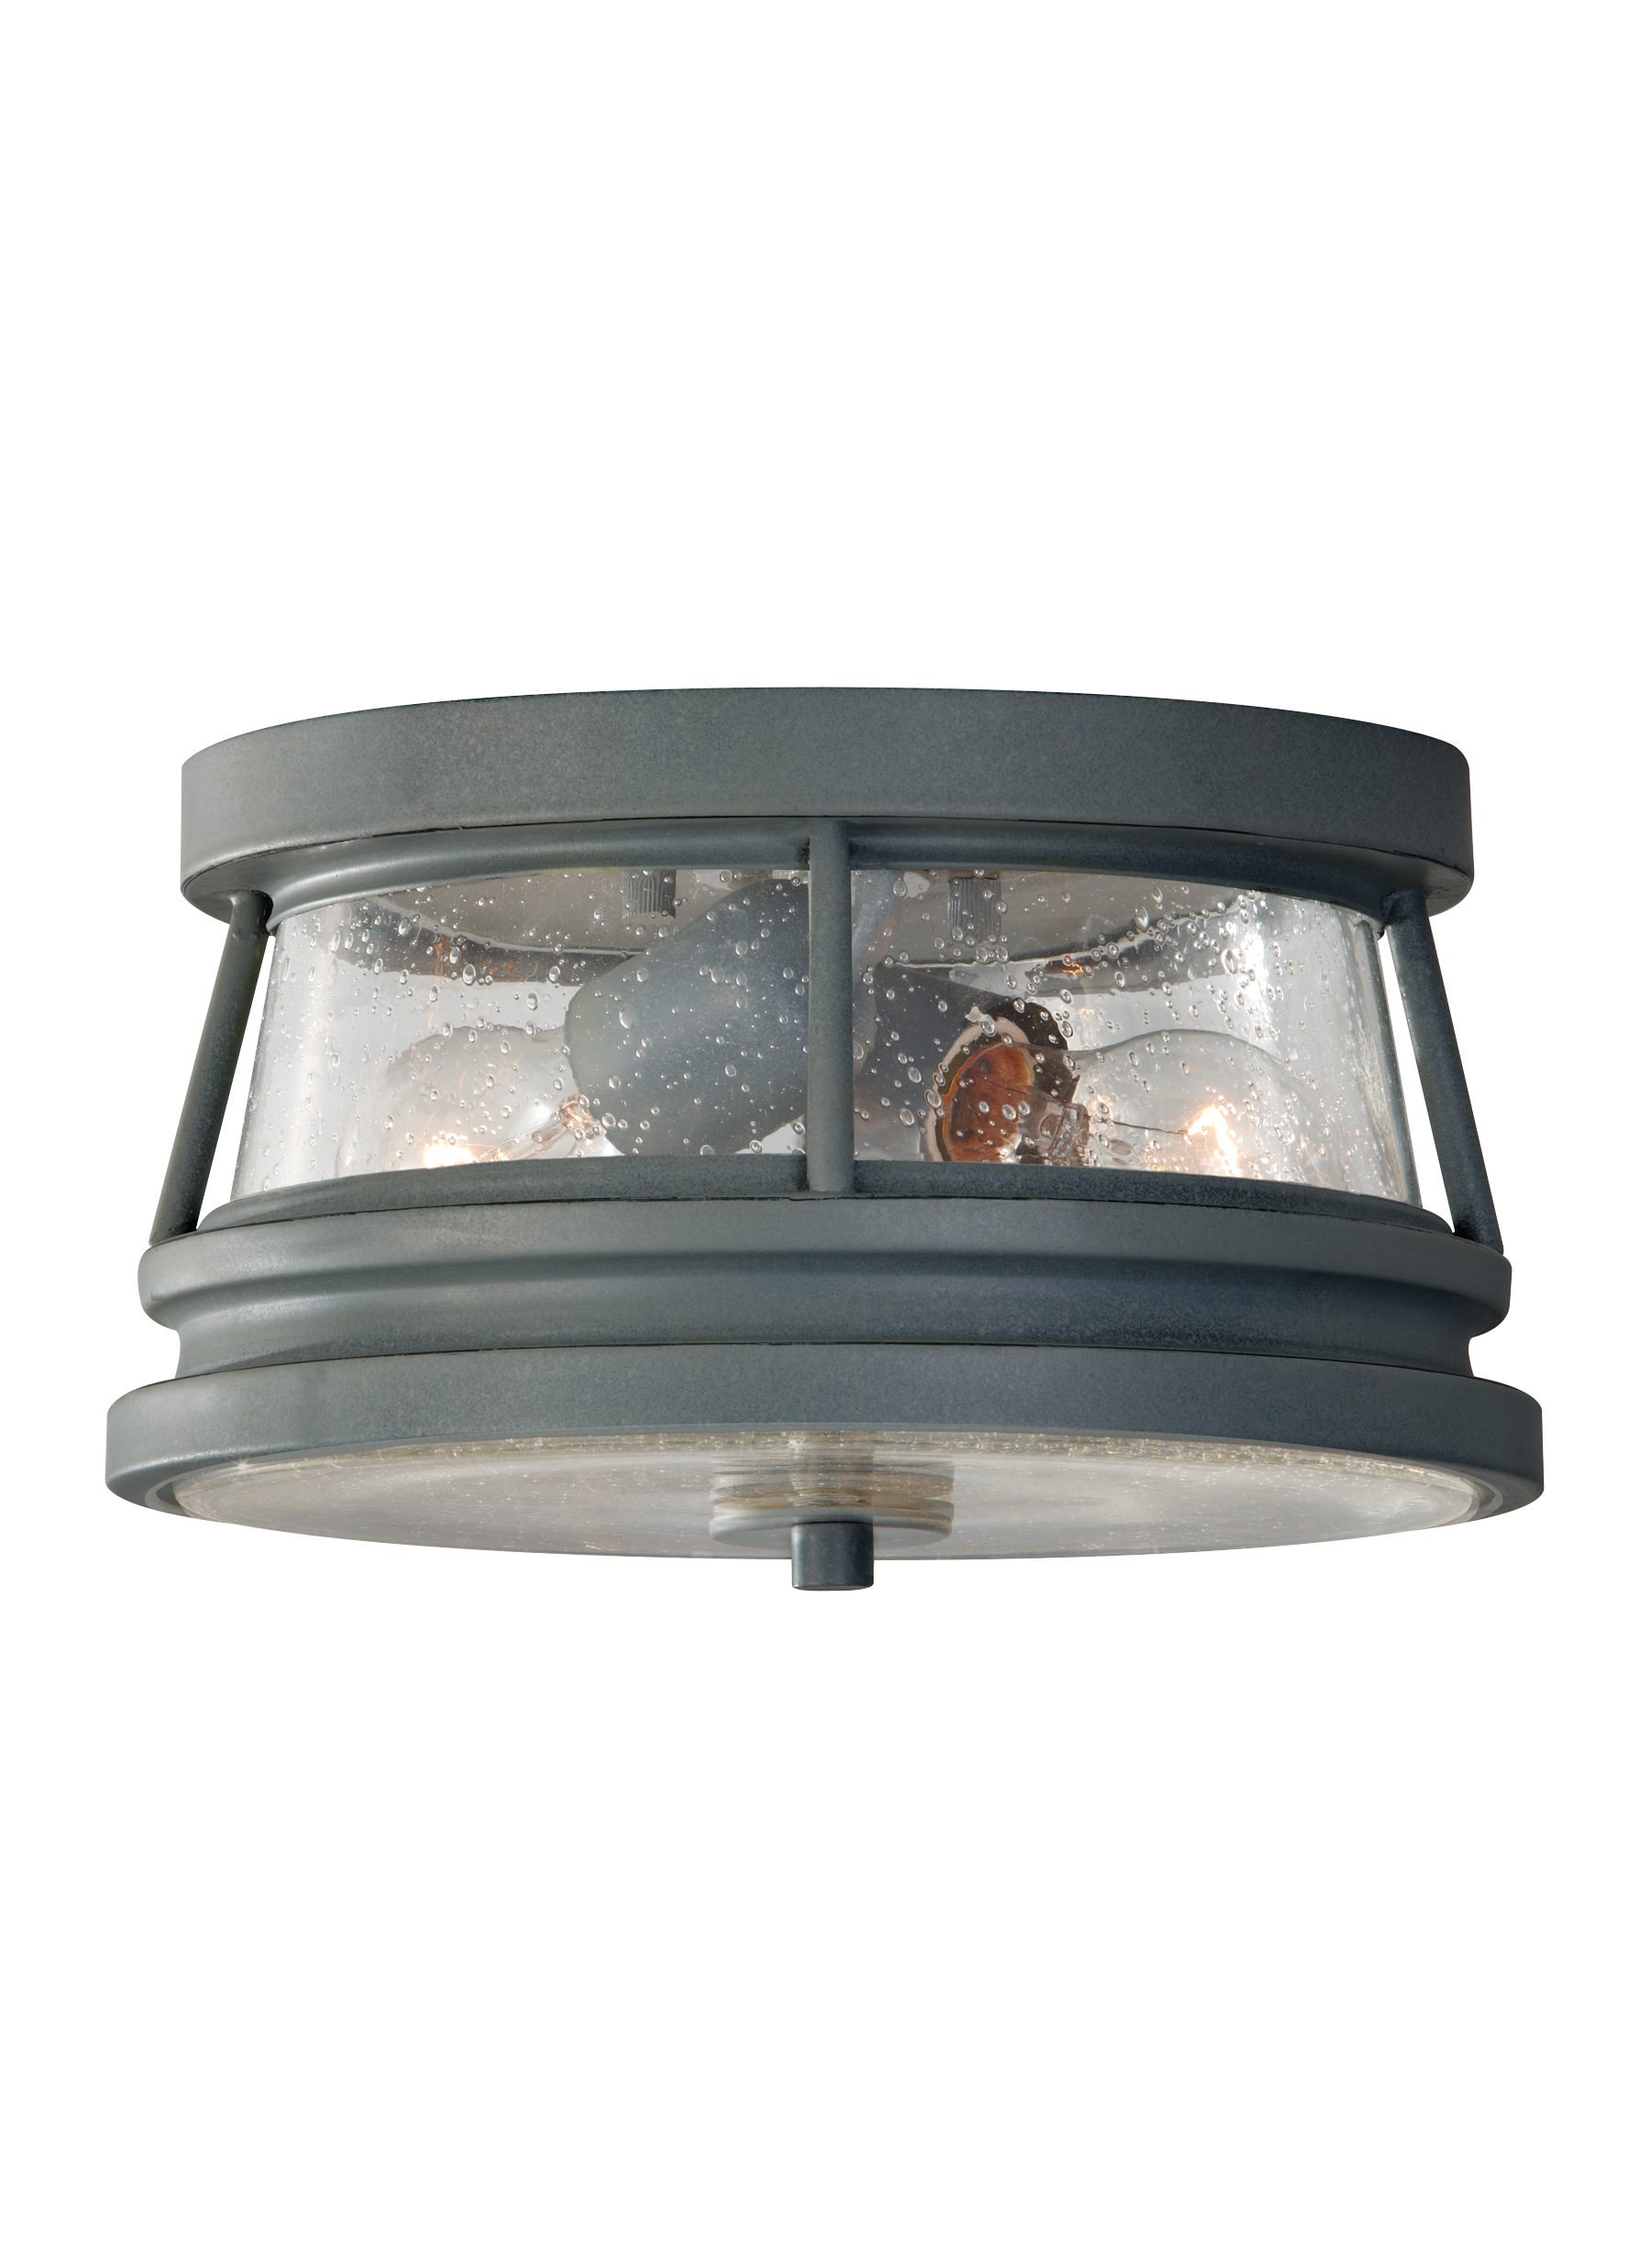 outdoor flush light porch 2light outdoor flush mount discontinued loading zoom ol8113stc2light mountstorm cloud